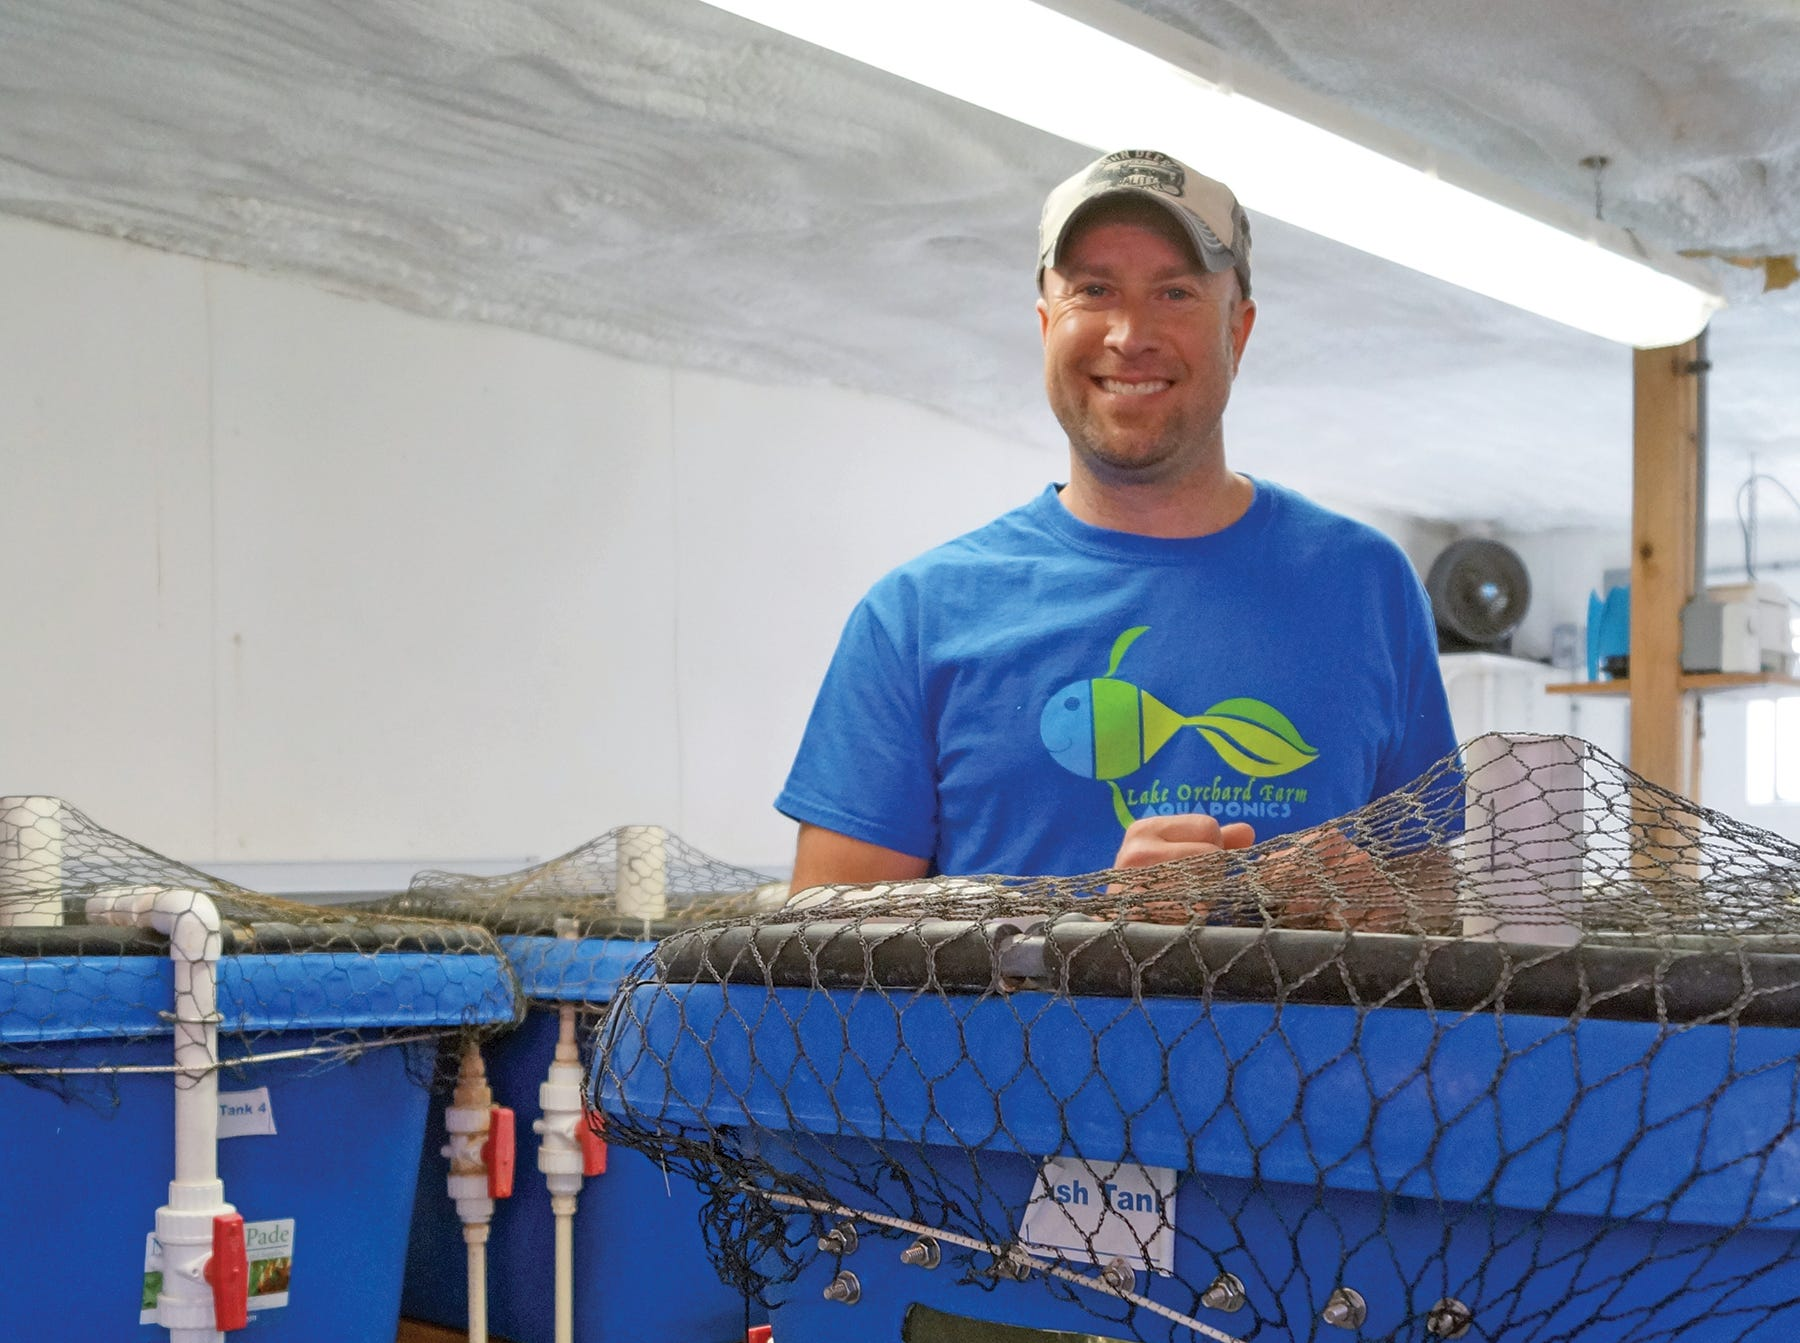 Nate Calkins says that aquaponics attracted him due to its stability and sustainability.